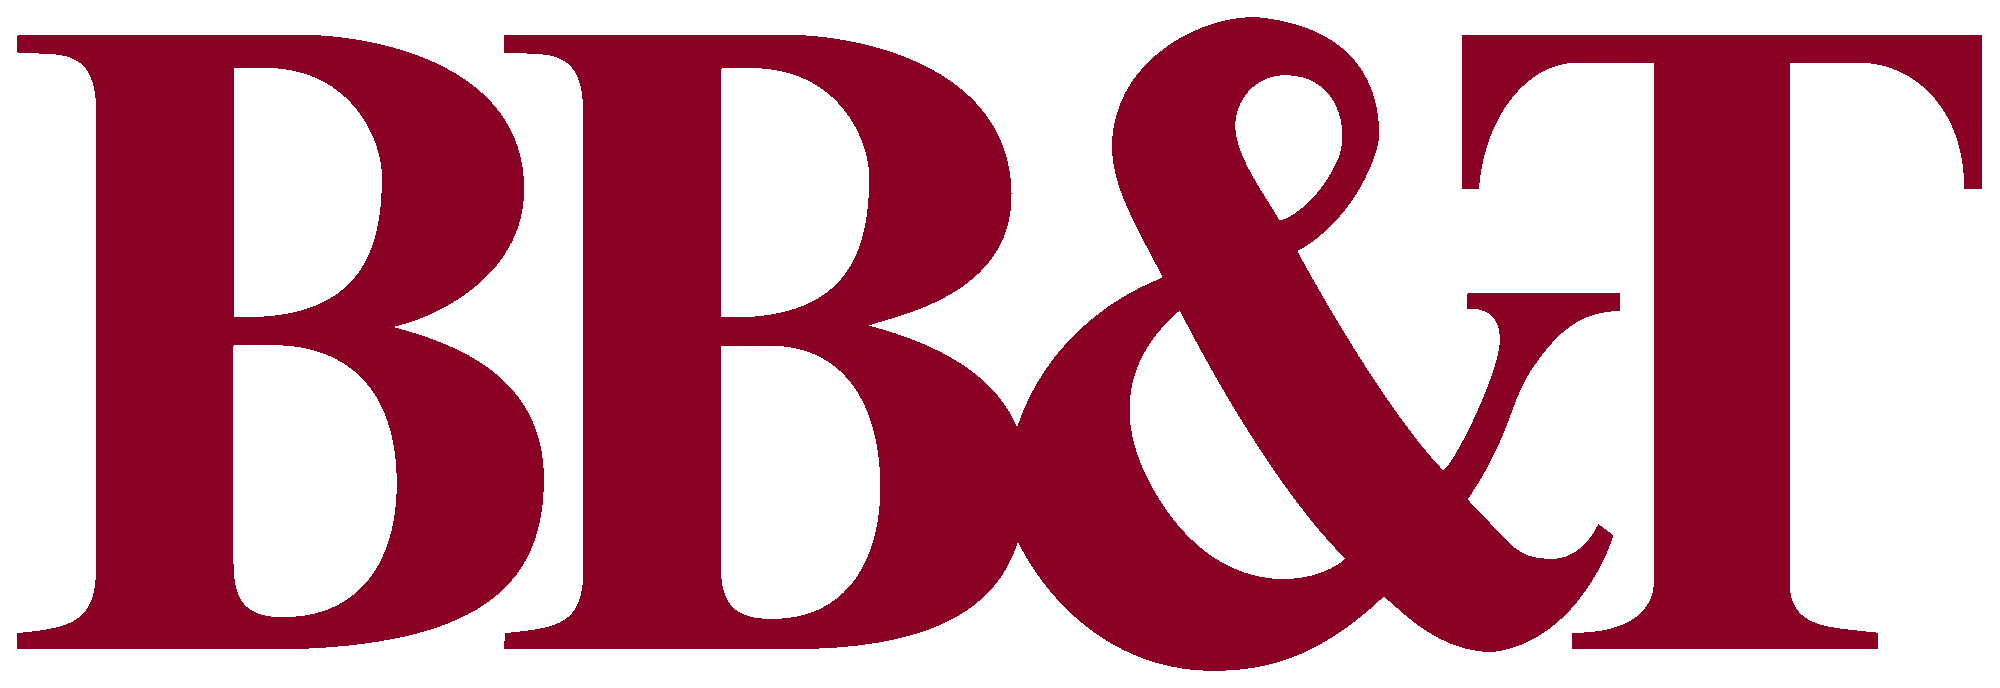 https://chrisbwarner.com/wp-content/uploads/2012/02/BBT_Bank_logo.png